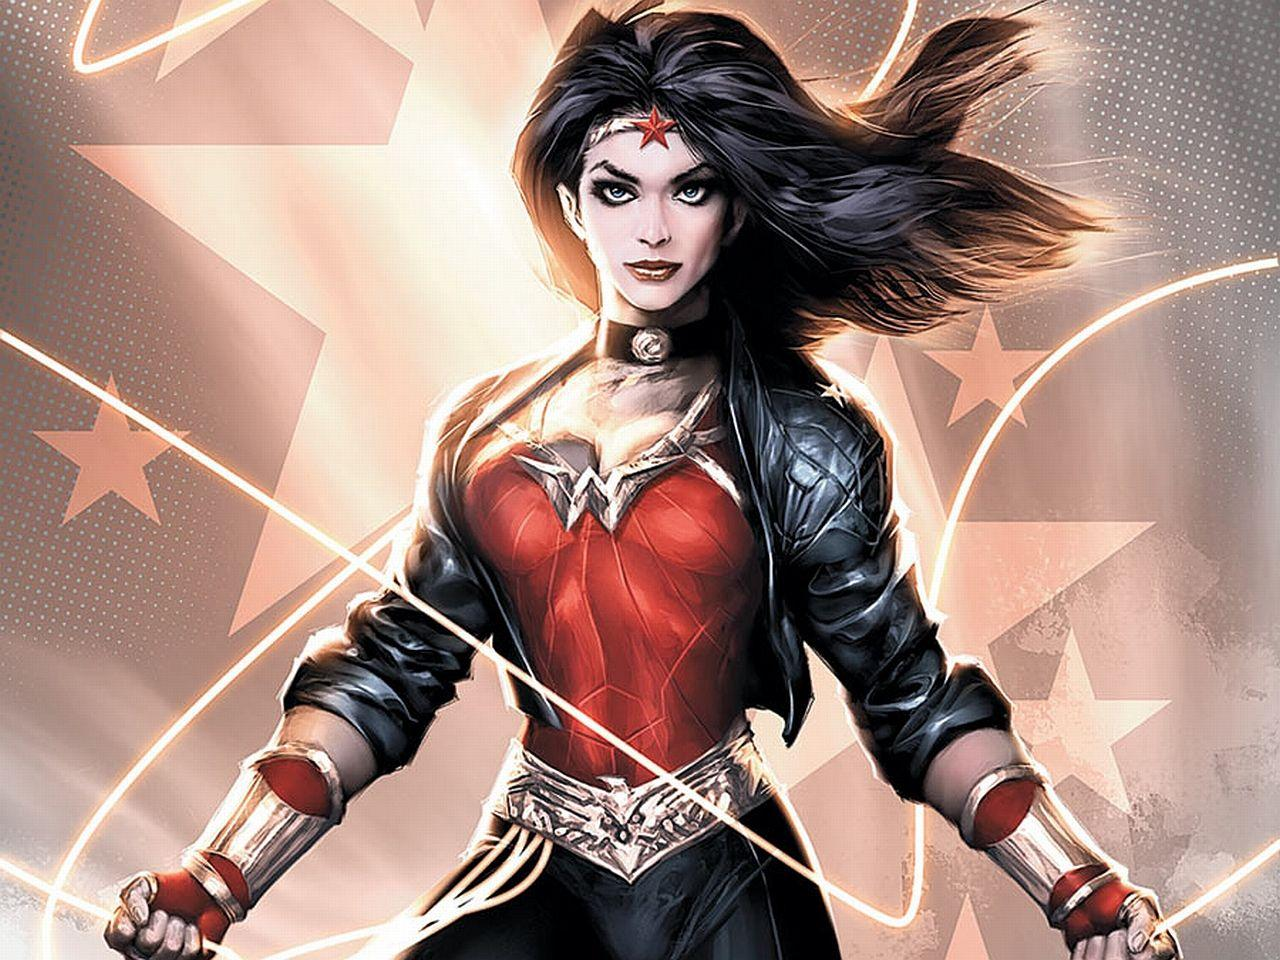 Wonder Woman Wallpaper Desktop #h958407 | Cartoons HD Wallpaper ...